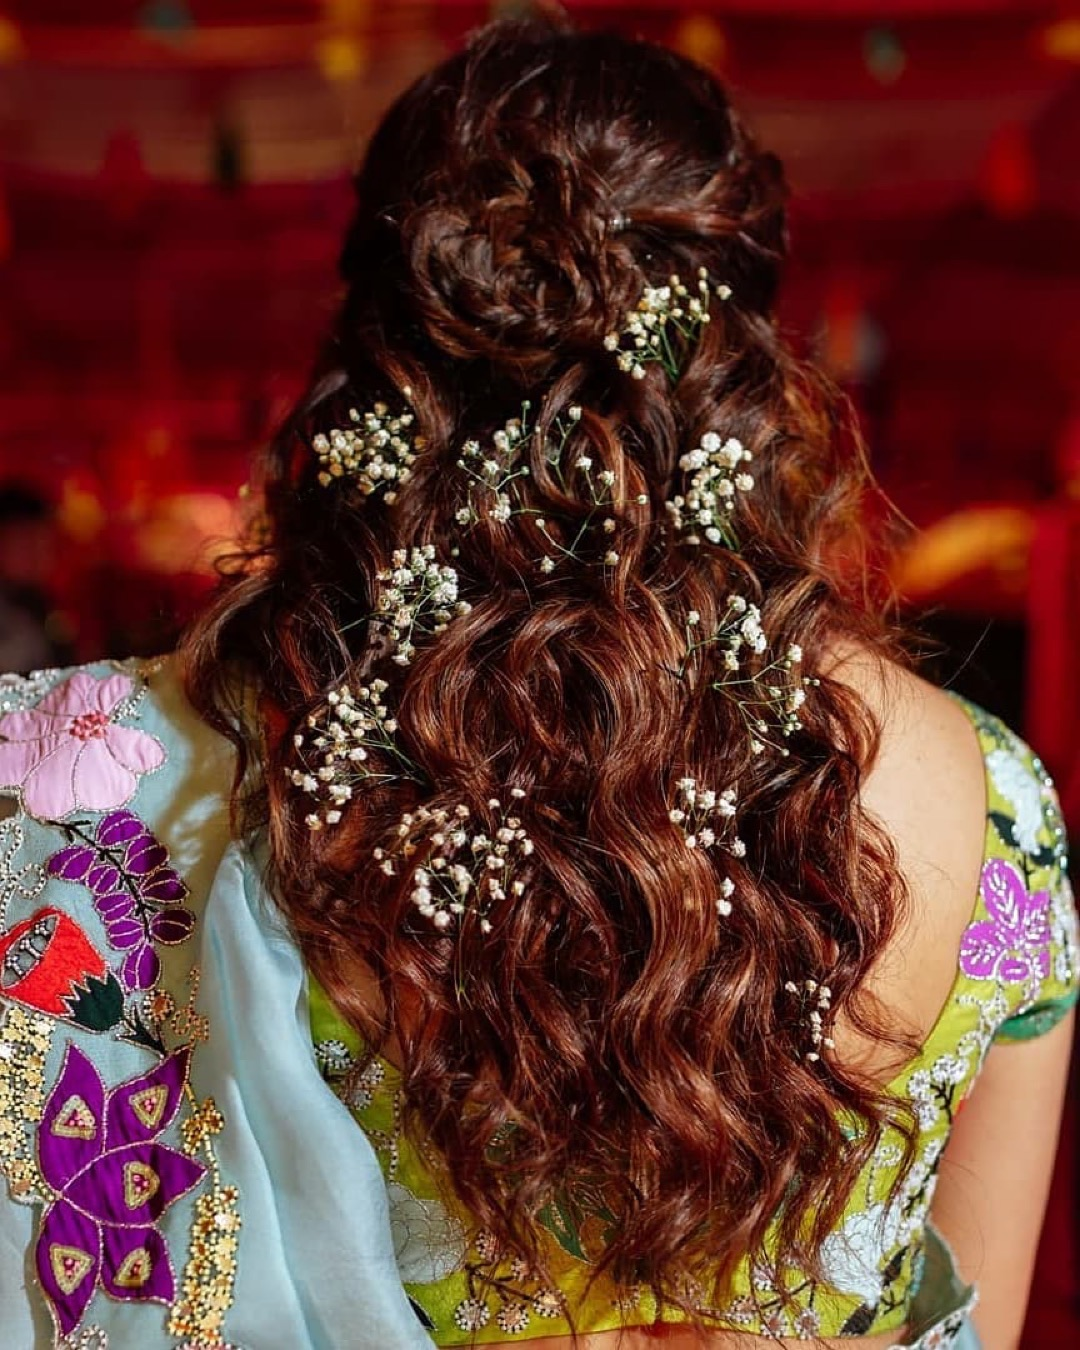 mehendi hairstyles | sania mirza and anam mirza | anam mirza wedding | anam mirza mehendi | mehendi outfit | bridal mehendi outfit | celebrity weddings indian bride | polki dimond | bridal makeup for Indian brides | bridal outfit | designer brides | indian celeb wedding | #celebrity #indianceleb #celebwedding #polkidiamond #polkinecklace #anammirzawedding | anam mirza wedding | babys breath hairstyle | # mehendi #bridallehenga #wittyvows #bridesofwittyvows #mehendidesigns #celebritymehendi #babysbreath